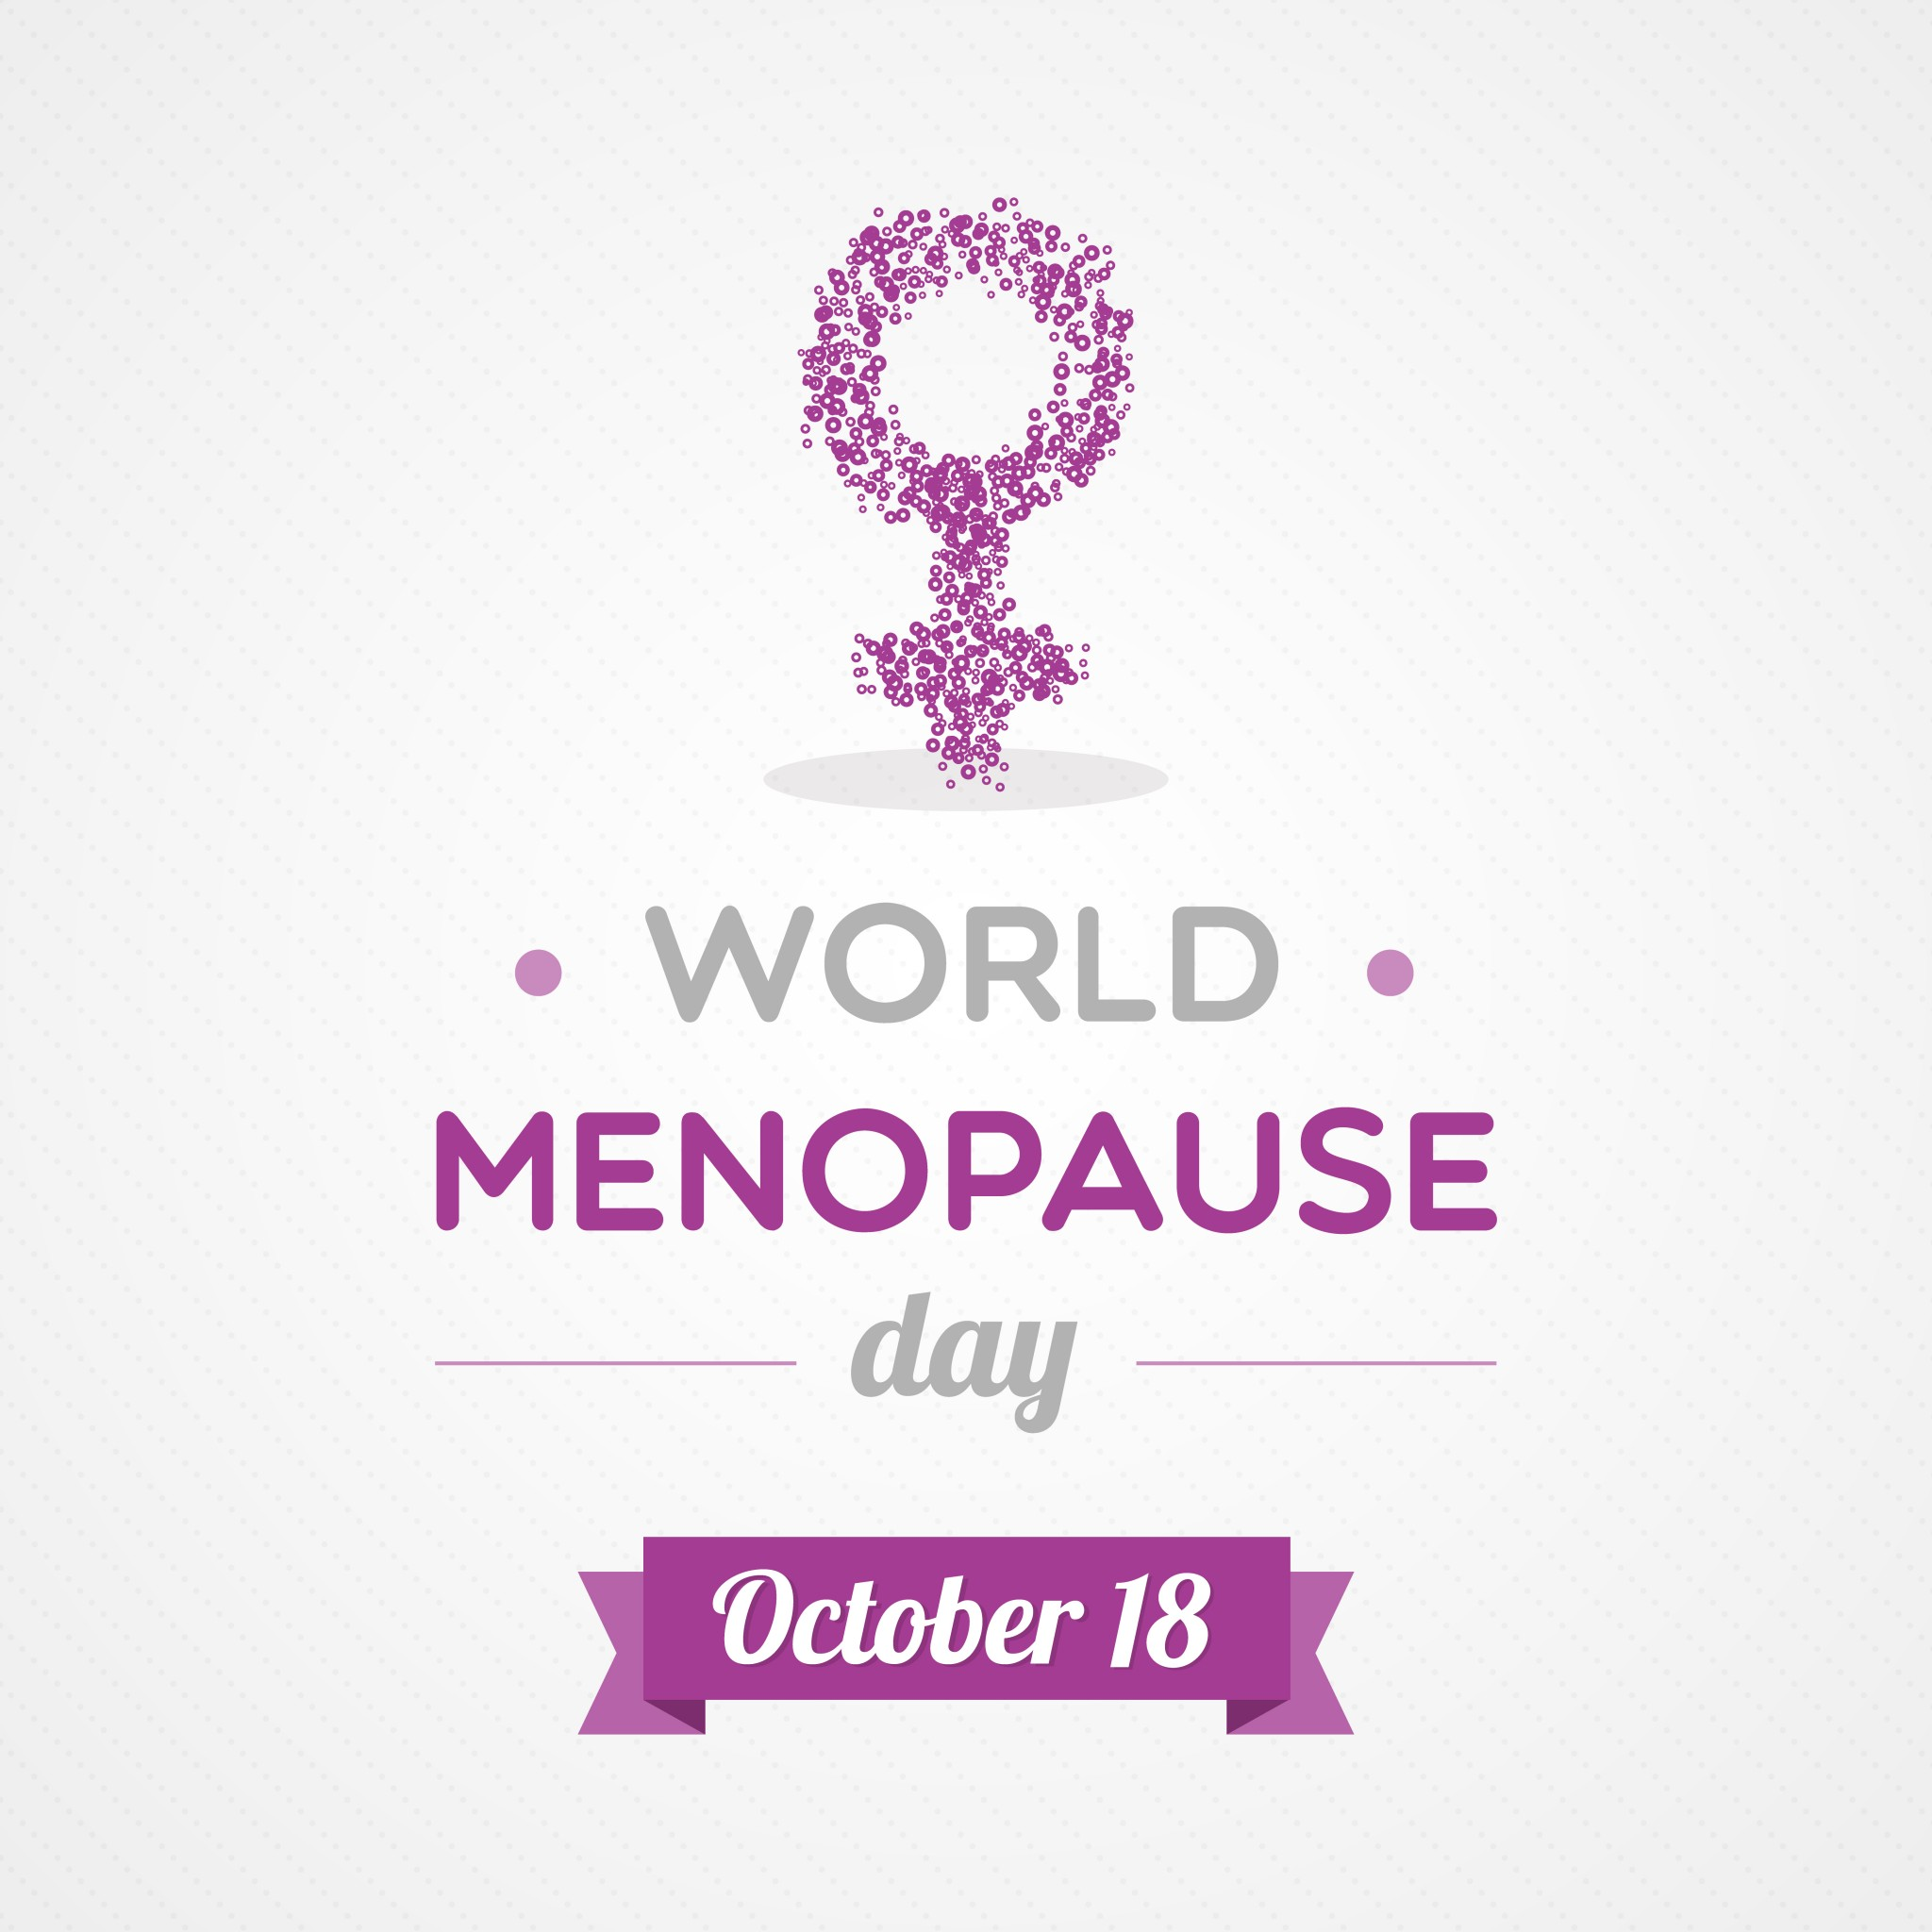 World Menopause Day recommend